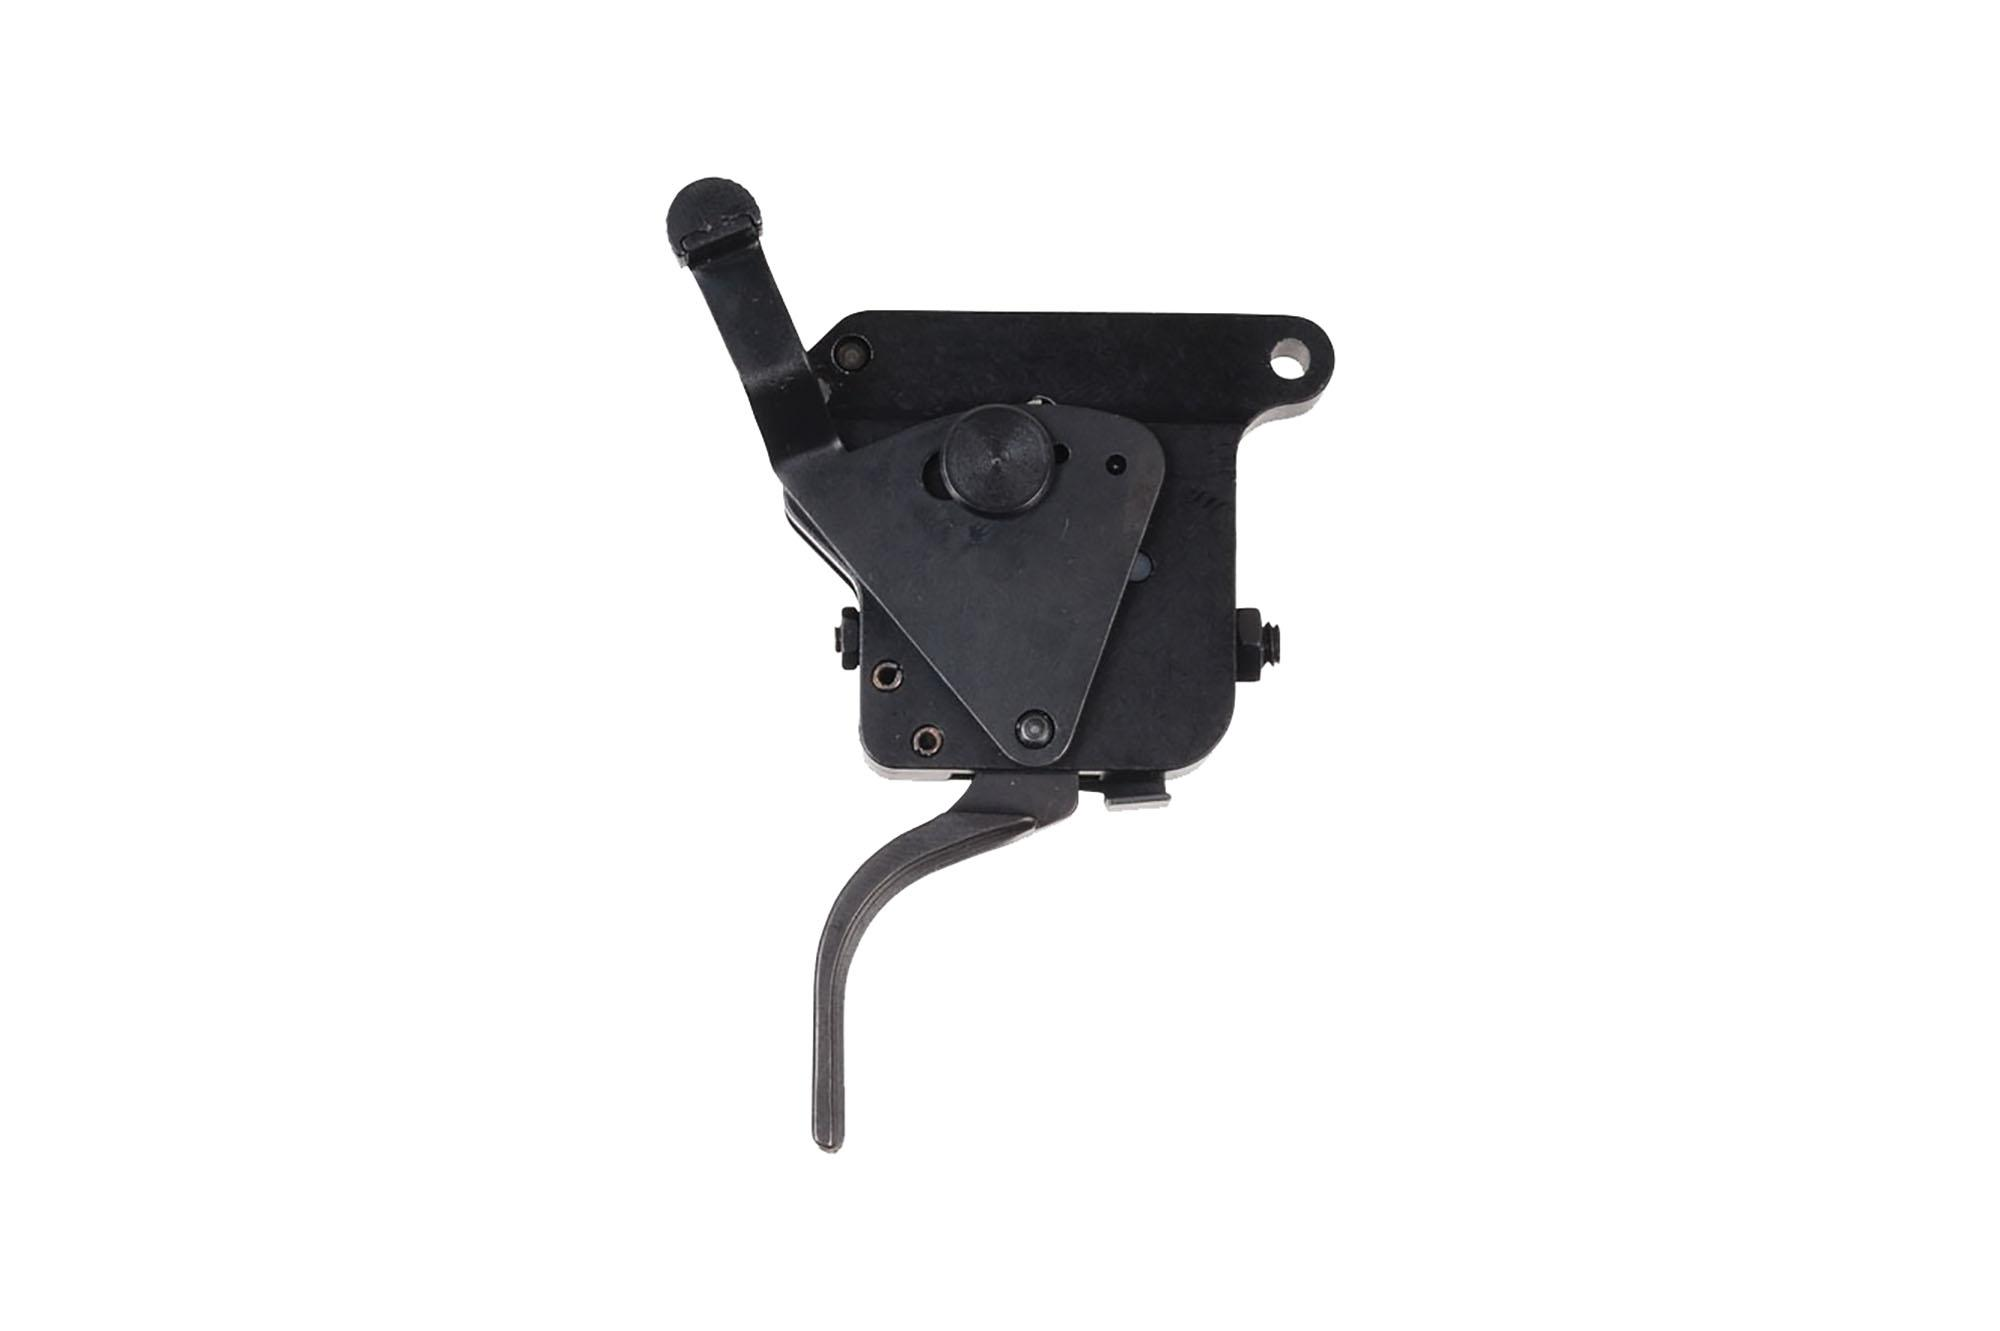 The timney trigger remington 700 adjustable trigger is a drop in design for your bolt action hunting rifle